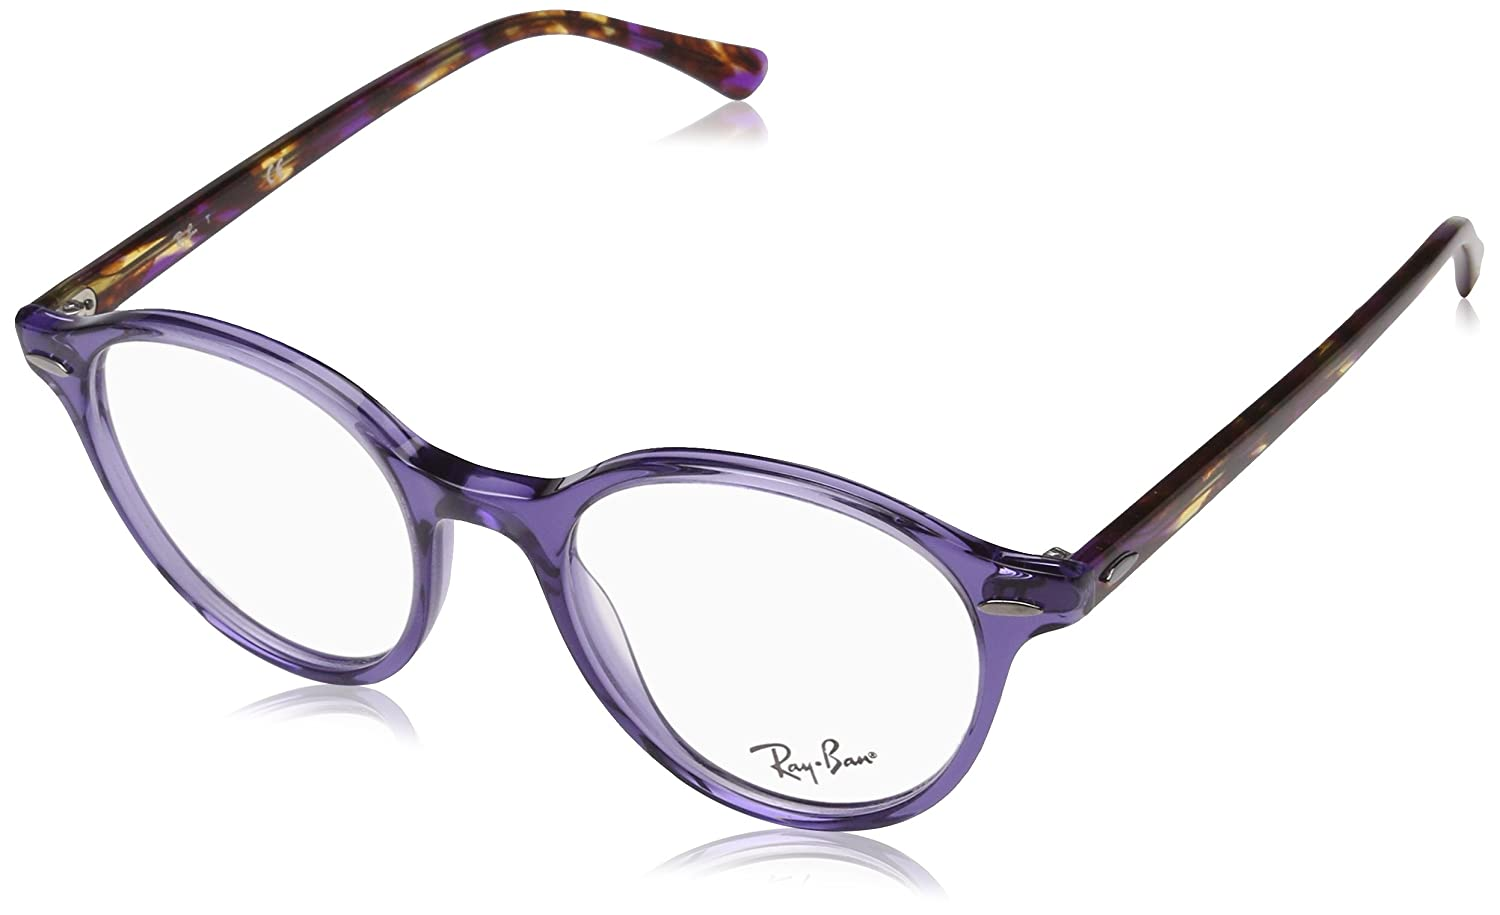 65c2d9f5a5 Ray-Ban Unisex RX7118 Dean Eyeglasses  Amazon.ca  Clothing   Accessories